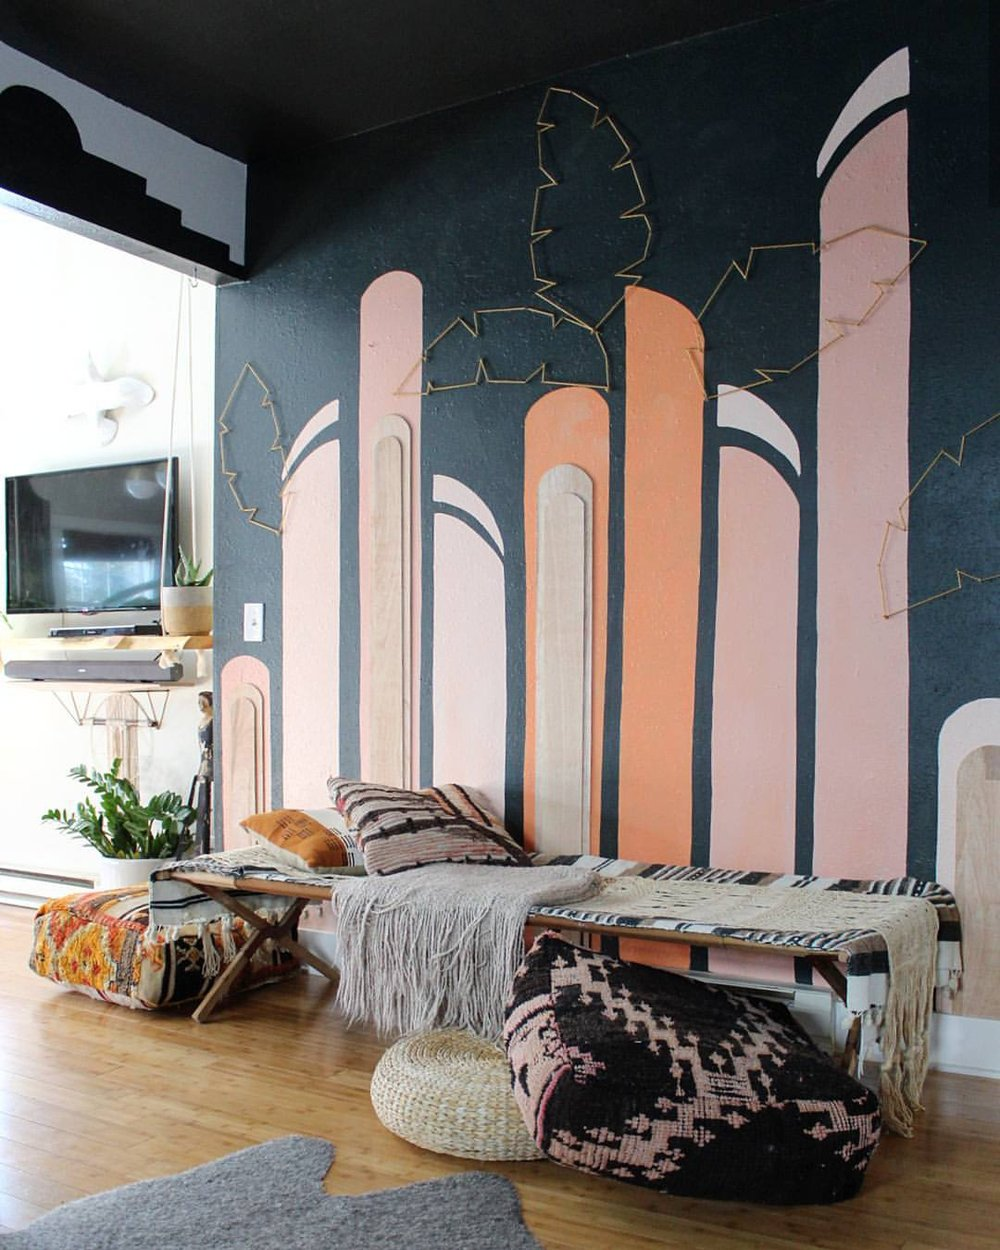 A fun and colorful mural with the addition of plywood shapes and palm leaves made of yarn wrapped around nails.